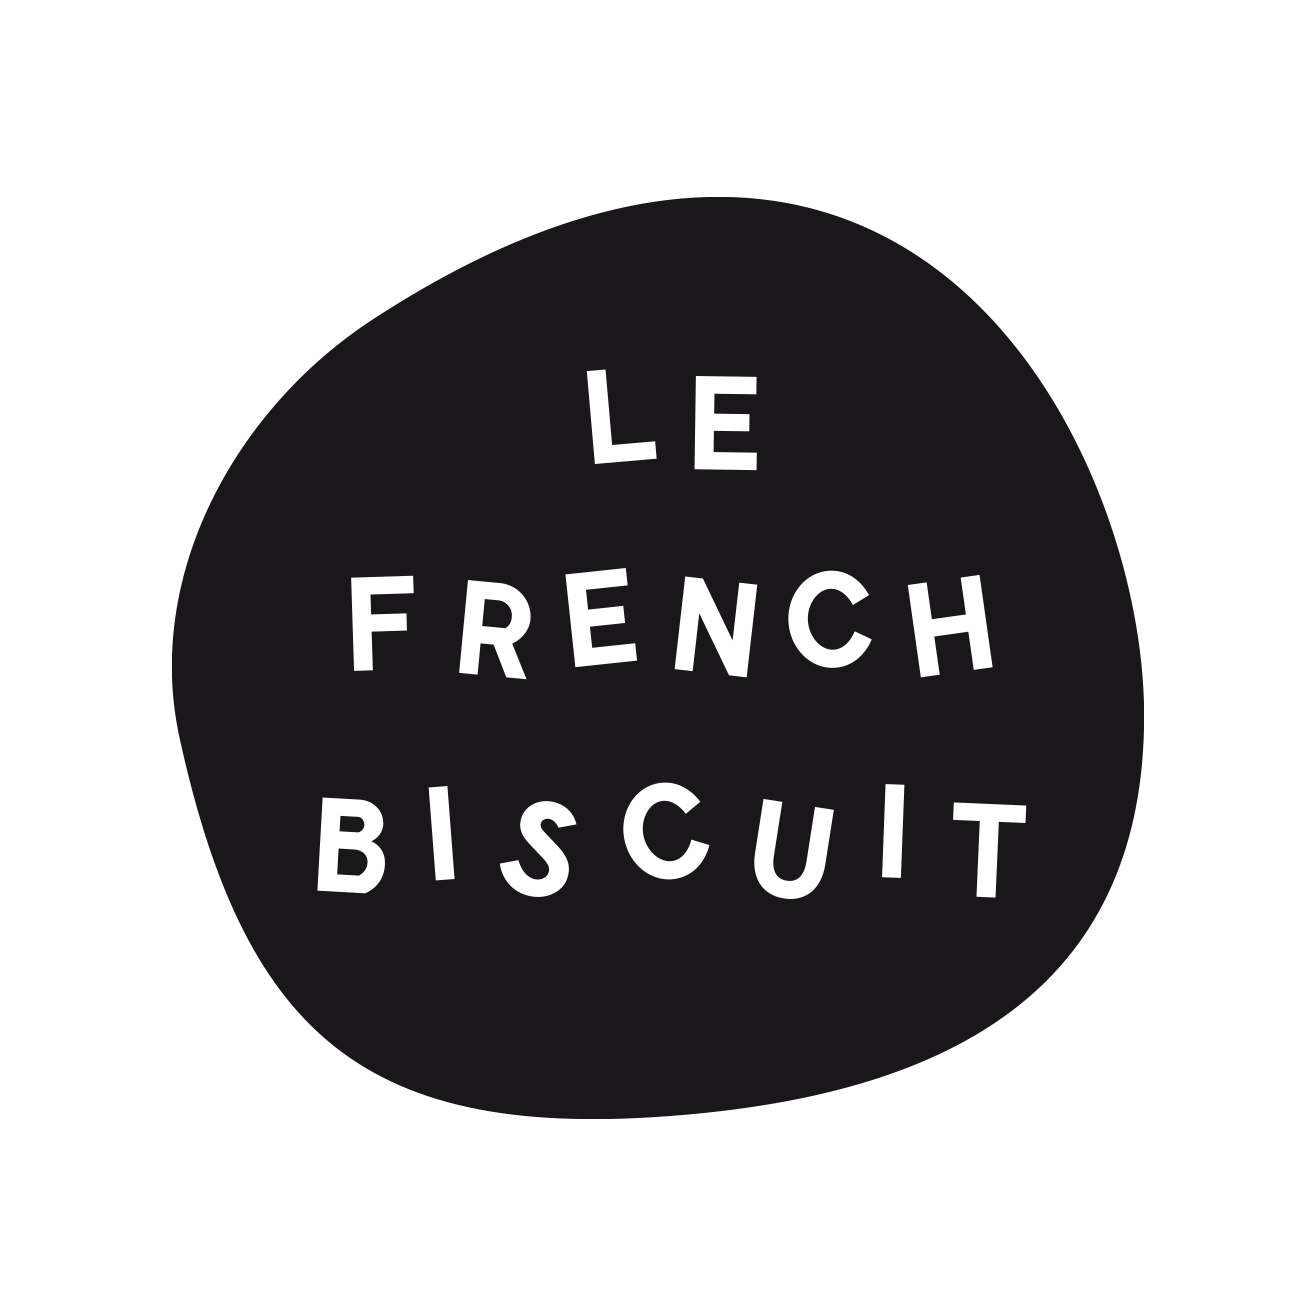 monsieur-madame-french-biscuit-sello